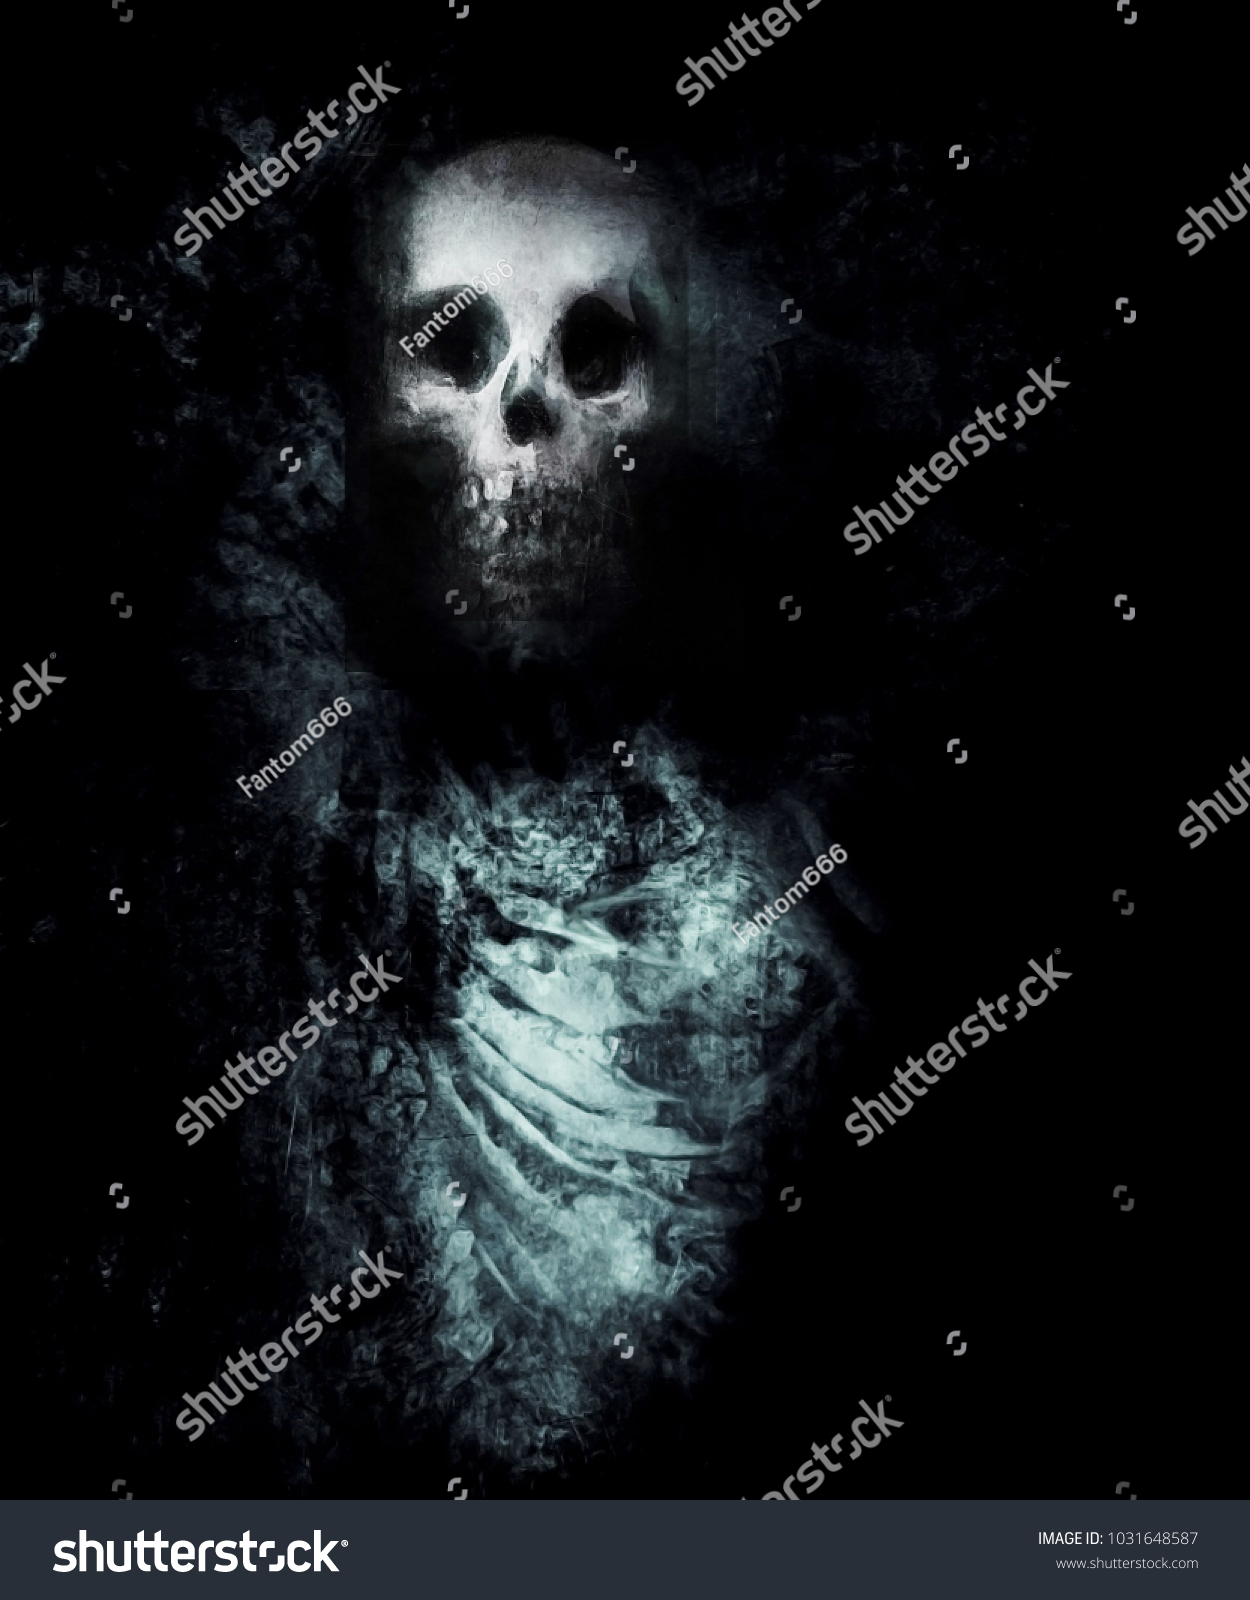 Cool Wallpaper Halloween Grunge - stock-photo-scary-halloween-grunge-wallpaper-with-spooky-skeleton-horror-background-design-for-t-shirt-print-1031648587  Collection_528212.jpg